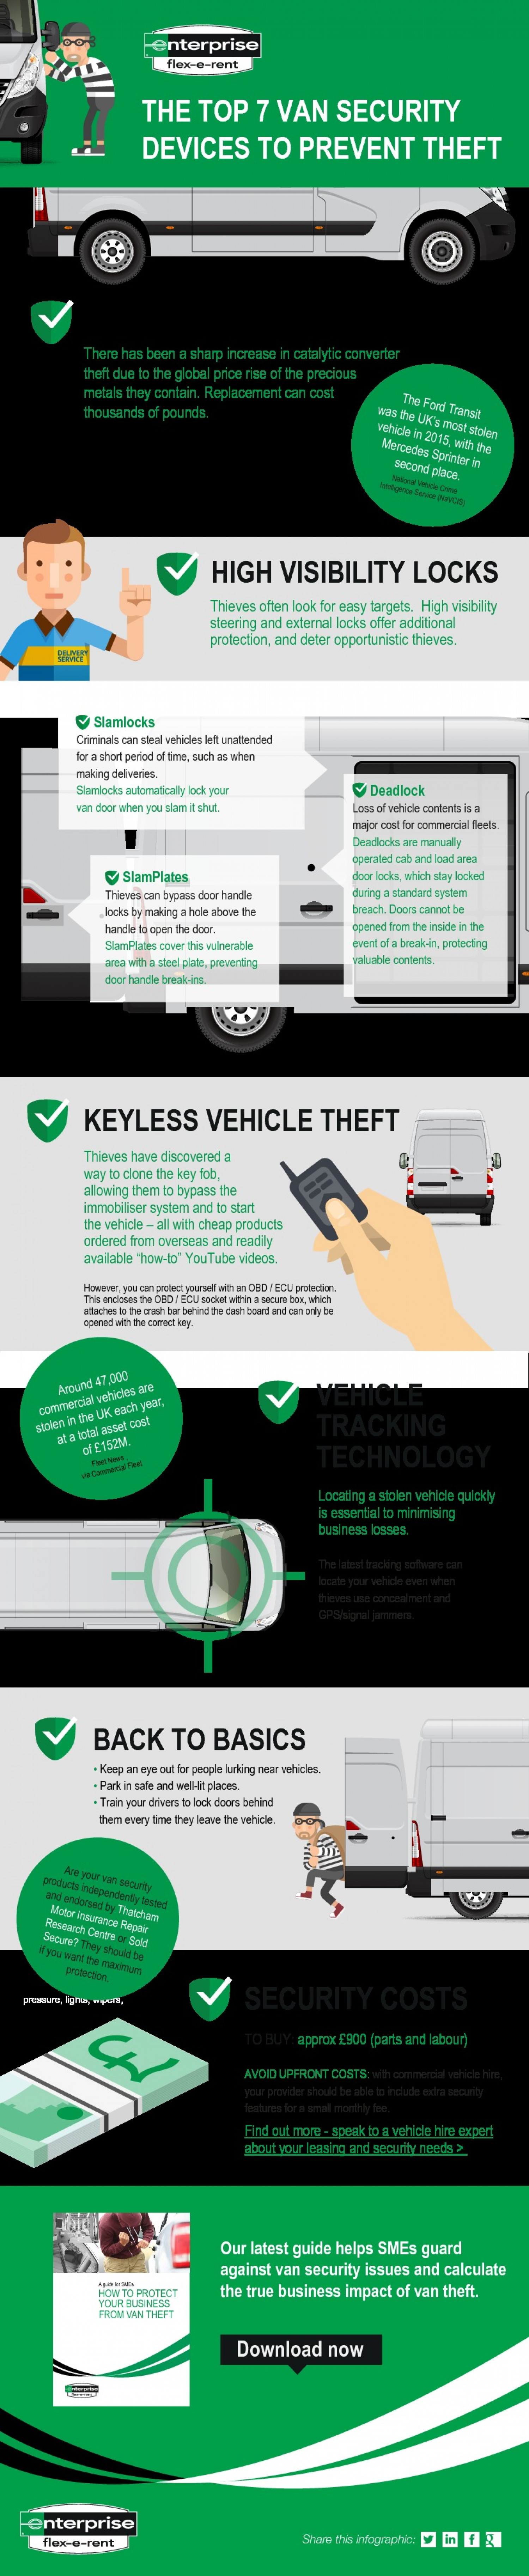 The Top 7 Van Security Devices to Prevent Theft Infographic